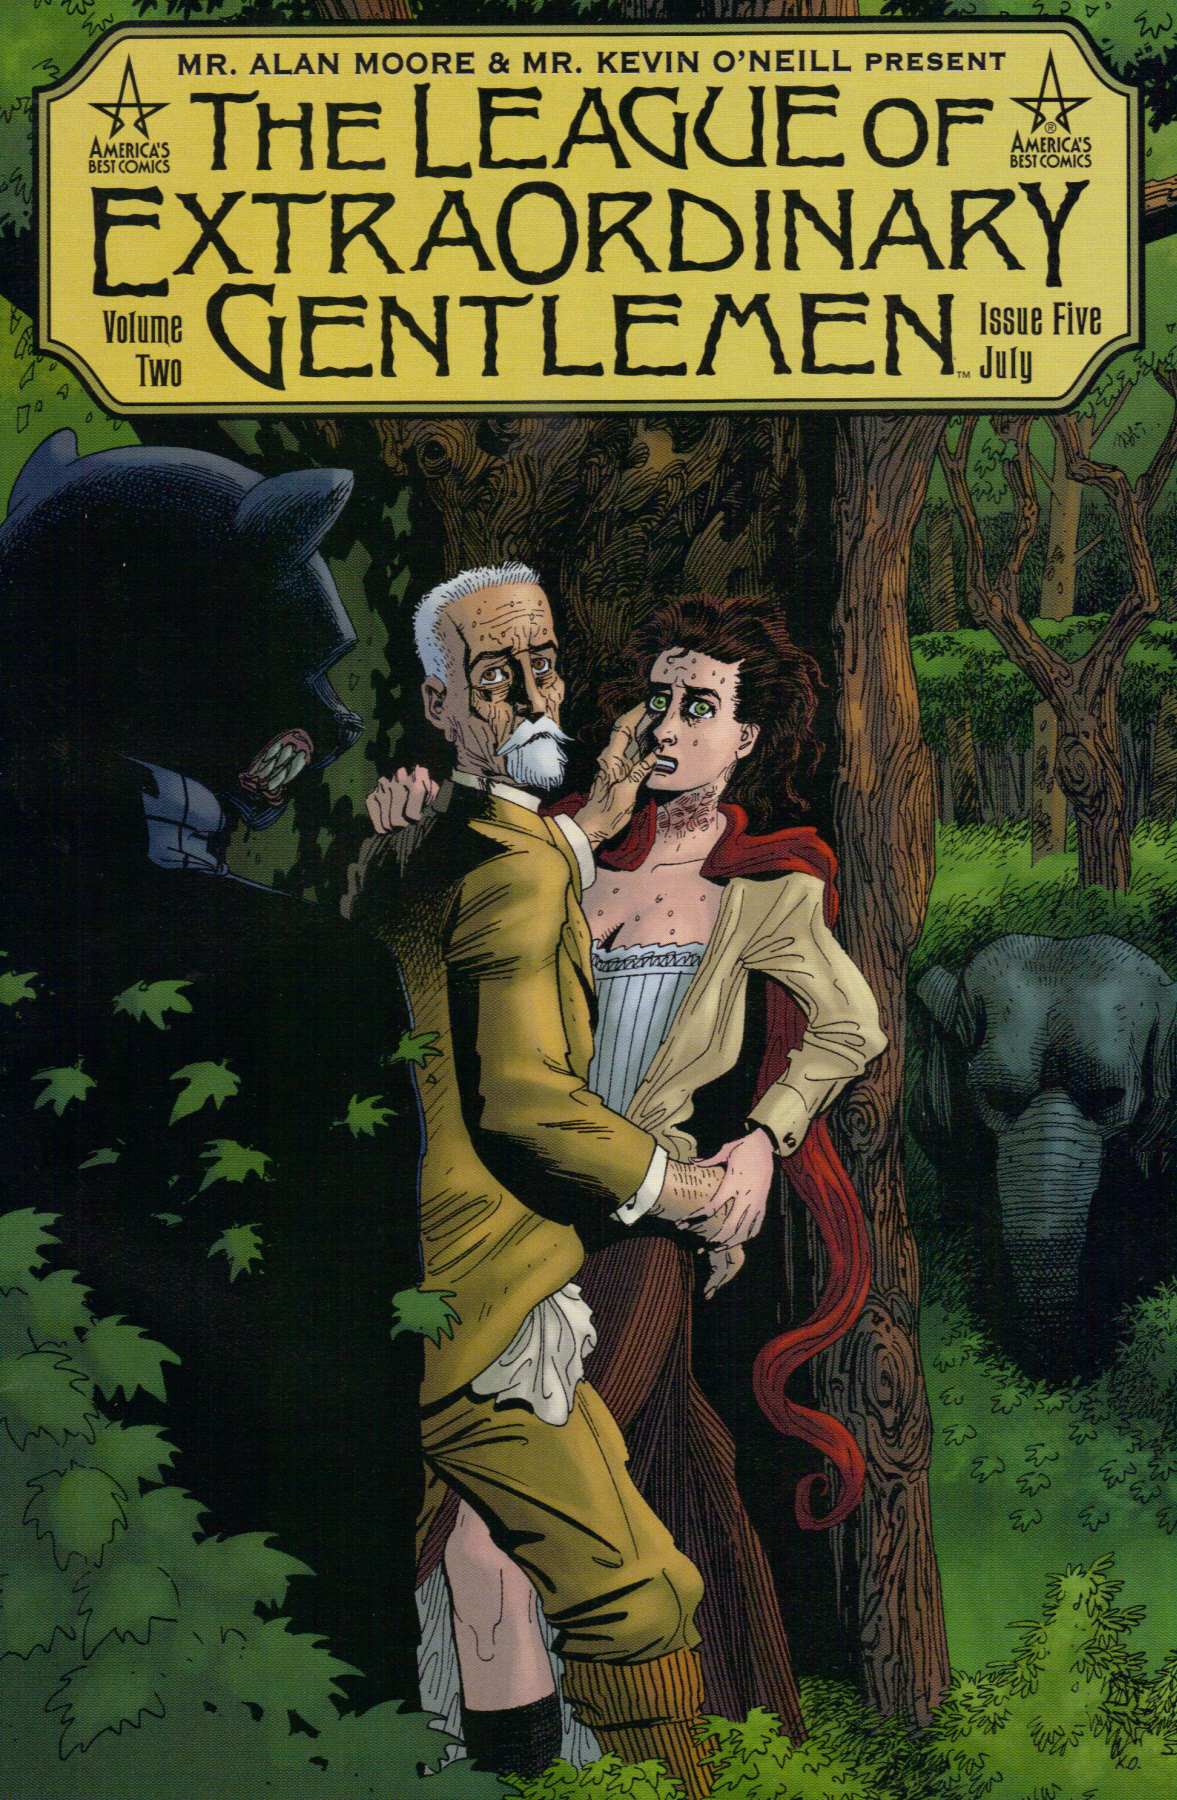 The League of Extraordinary Gentlemen (Vol IV): The Tempest #1 (of 6)